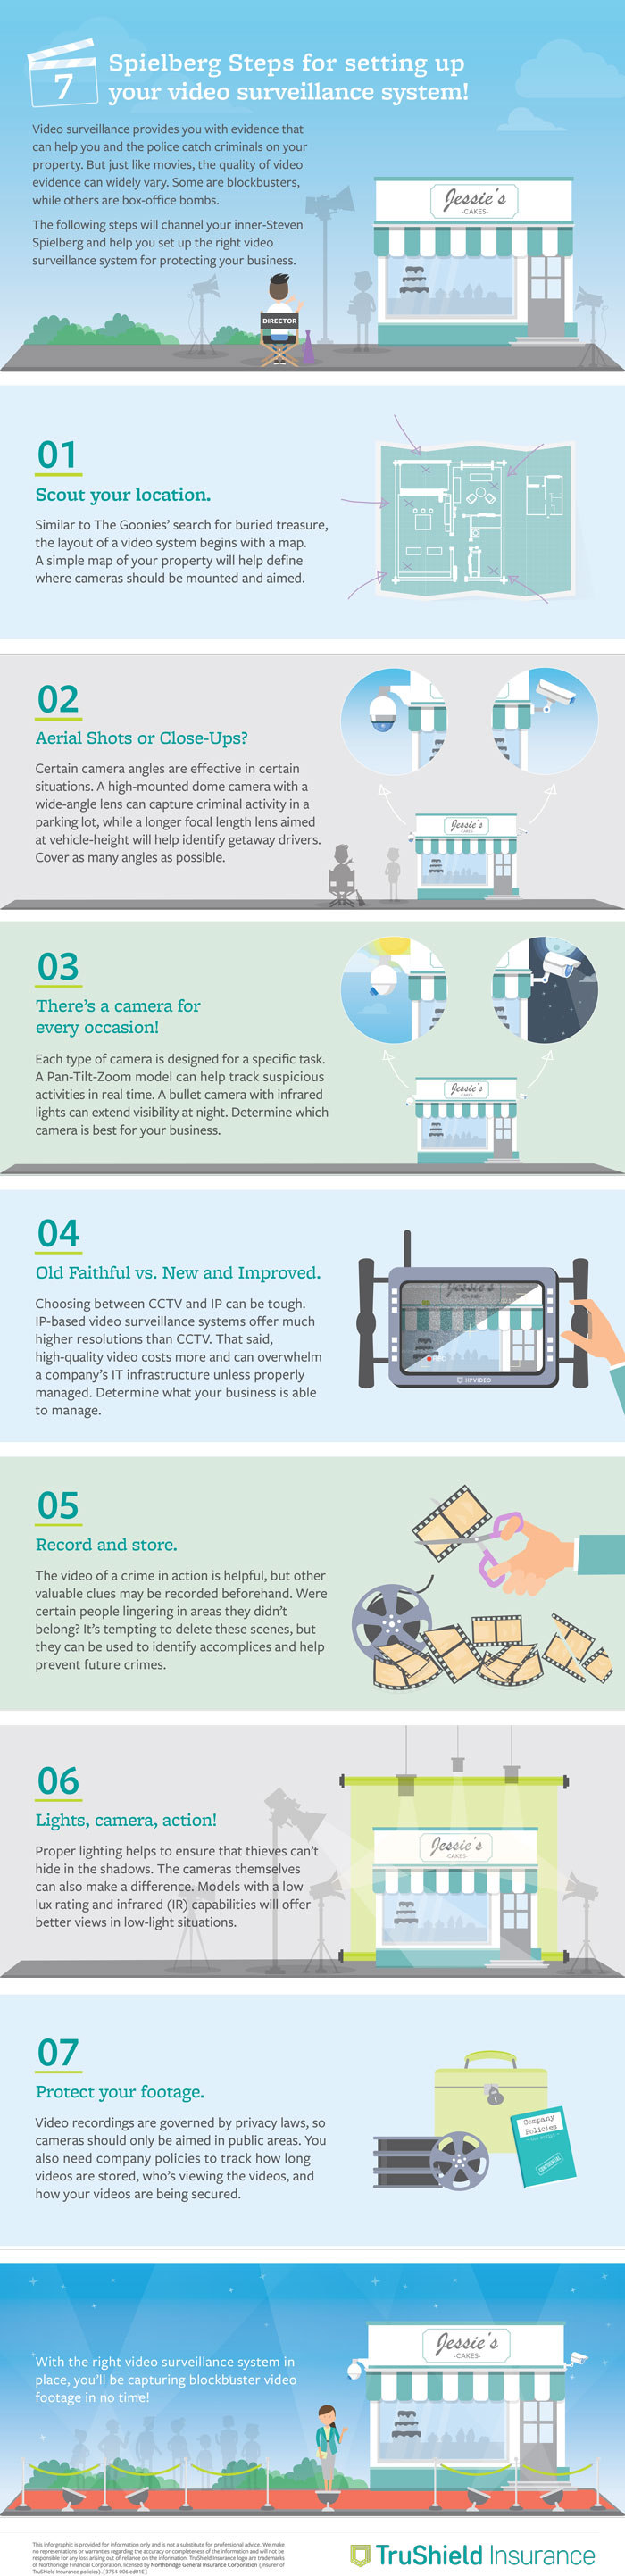 TruShield Video Surveillance System Infographic